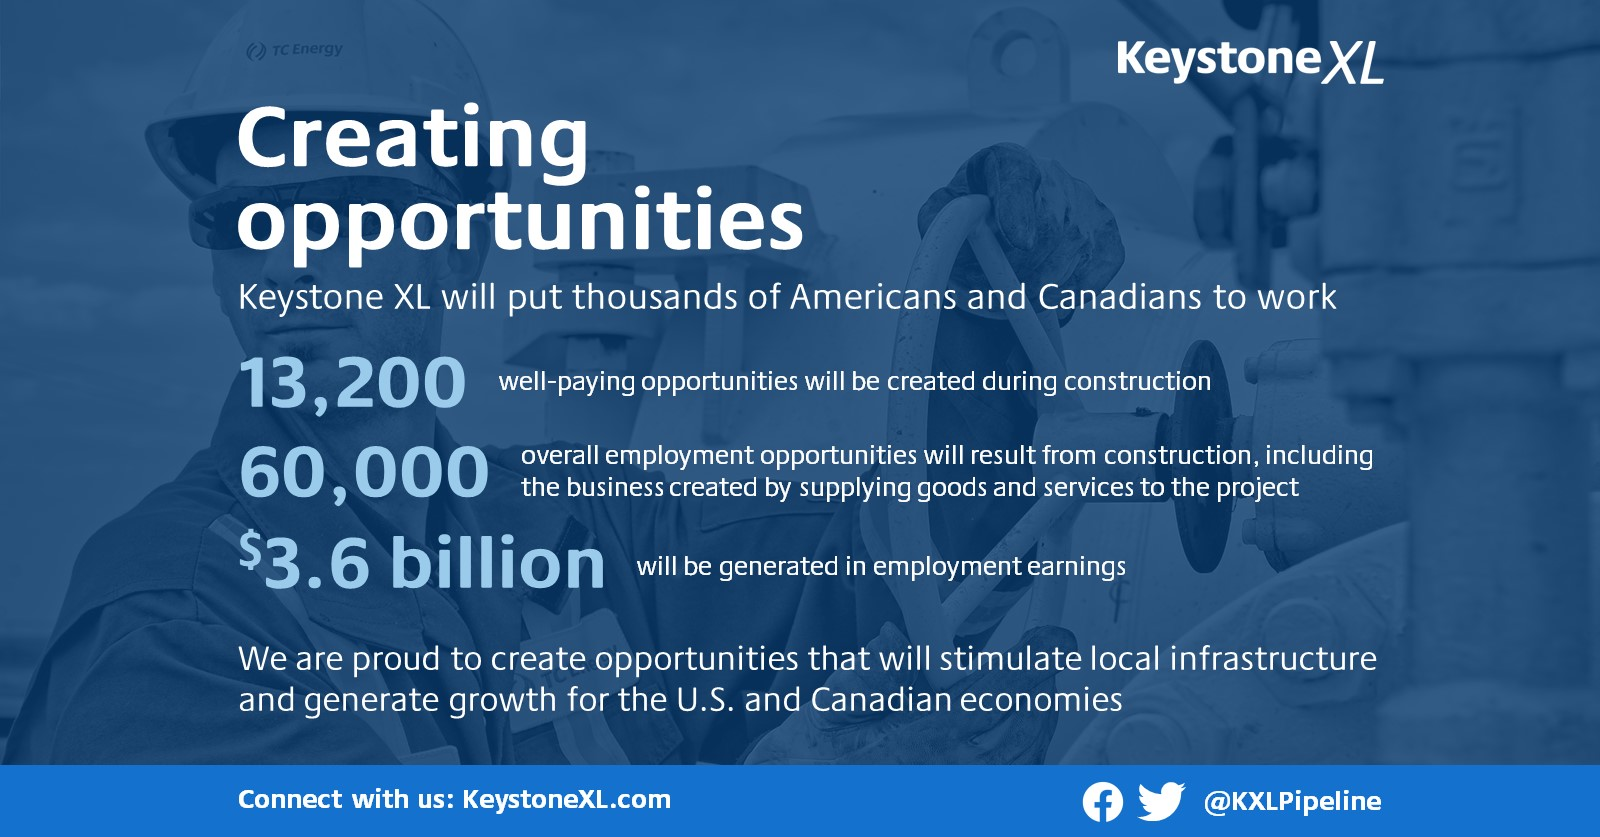 keystone-xl-safety-is-our-top-priority-1200x675.jpg